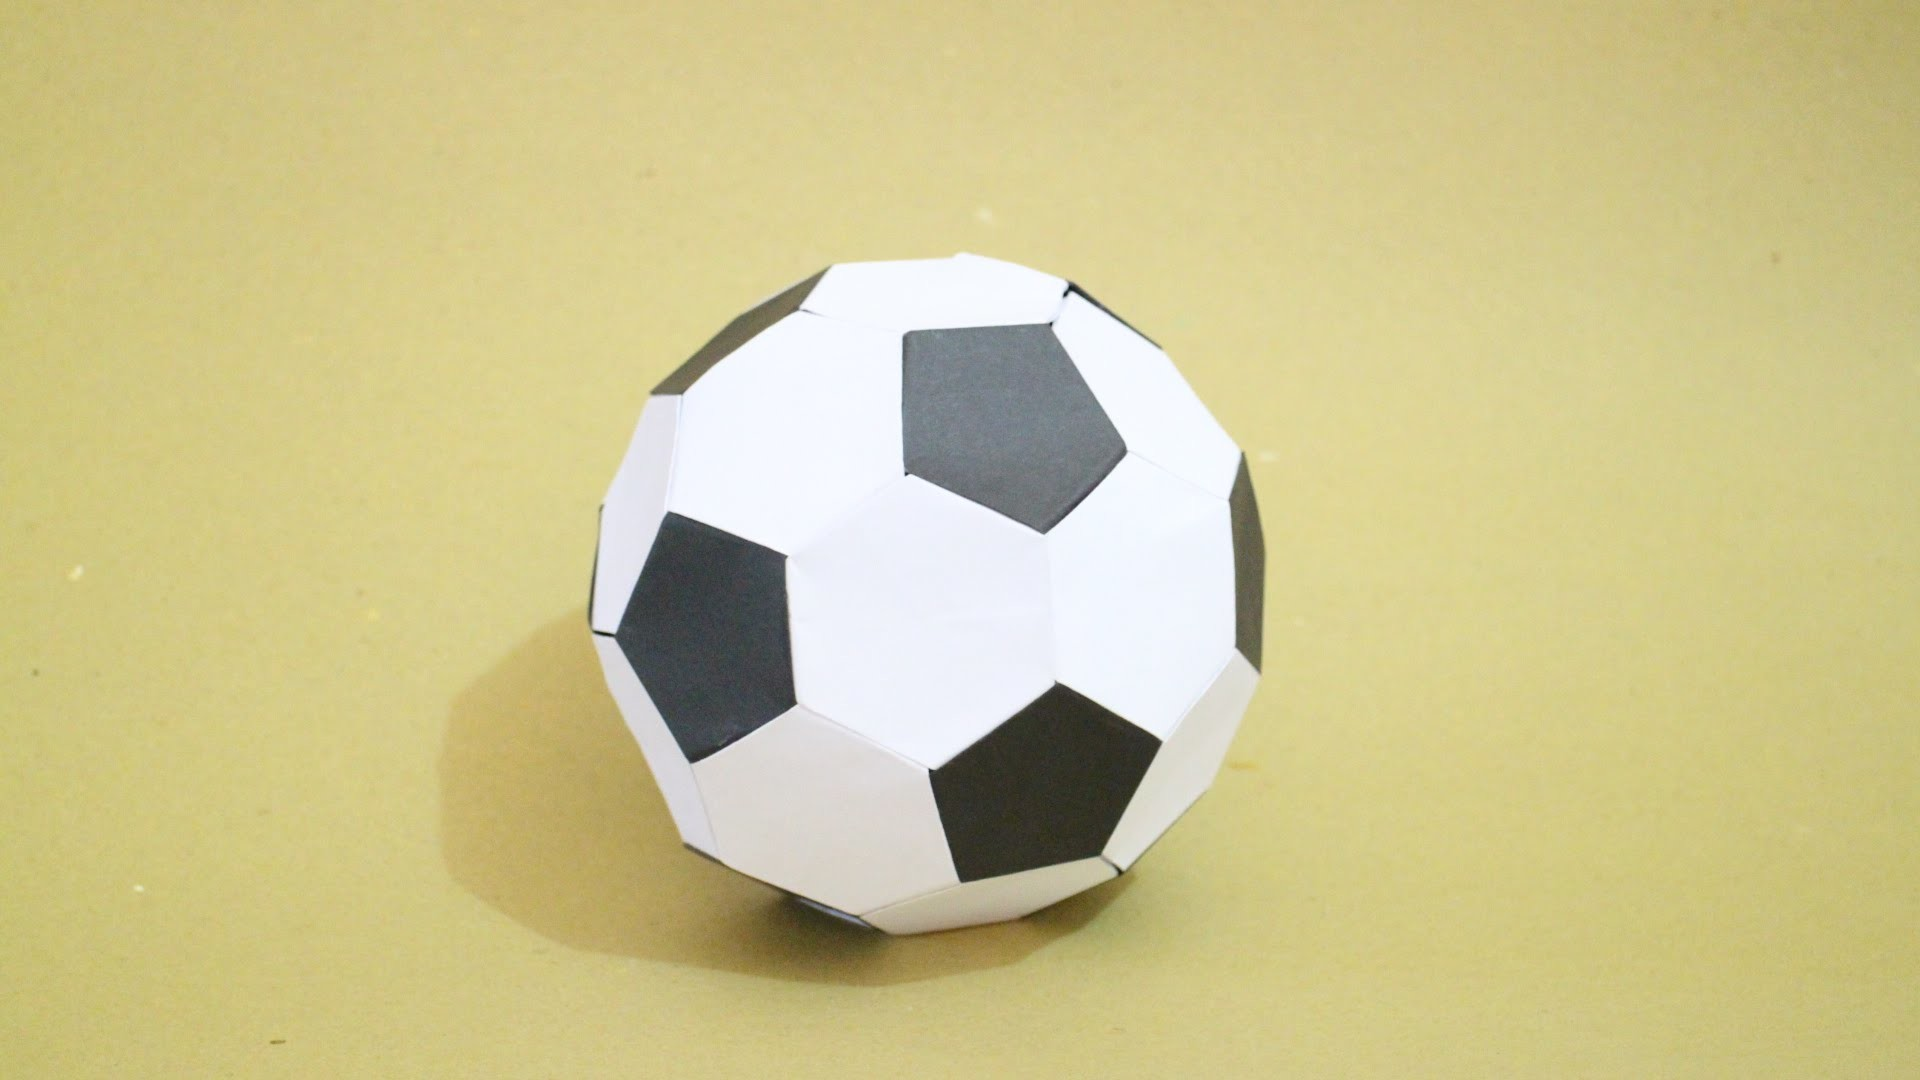 How to Make Origami Soccer Ball Size 2 (Black-White)